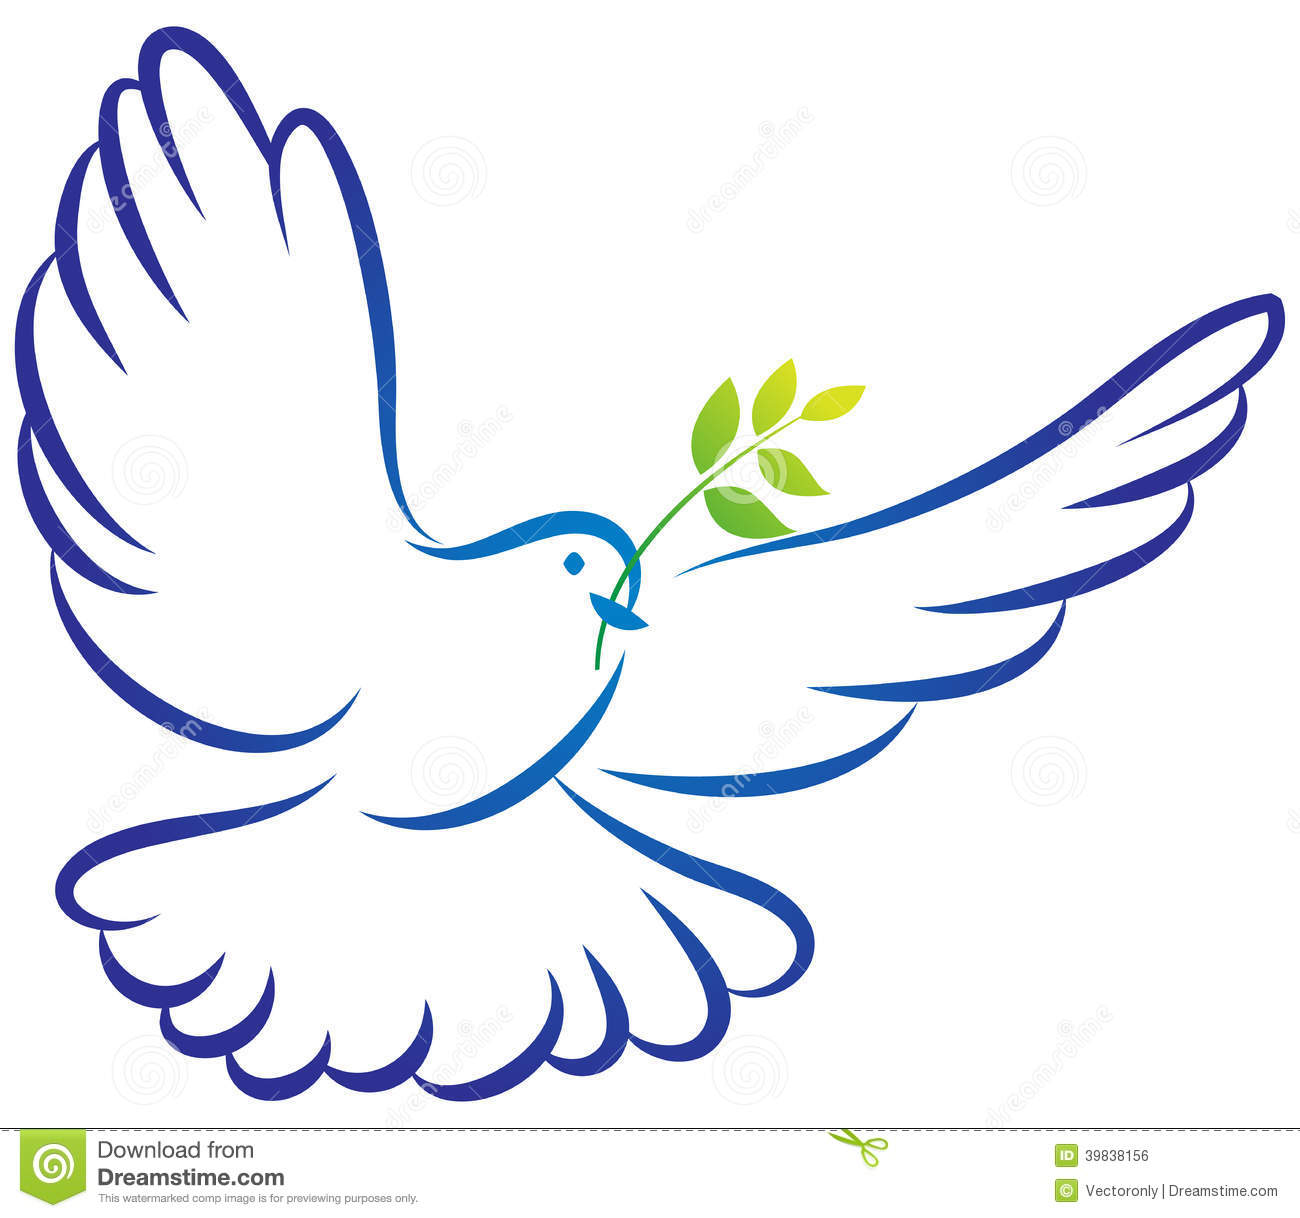 3057 Peace free clipart.